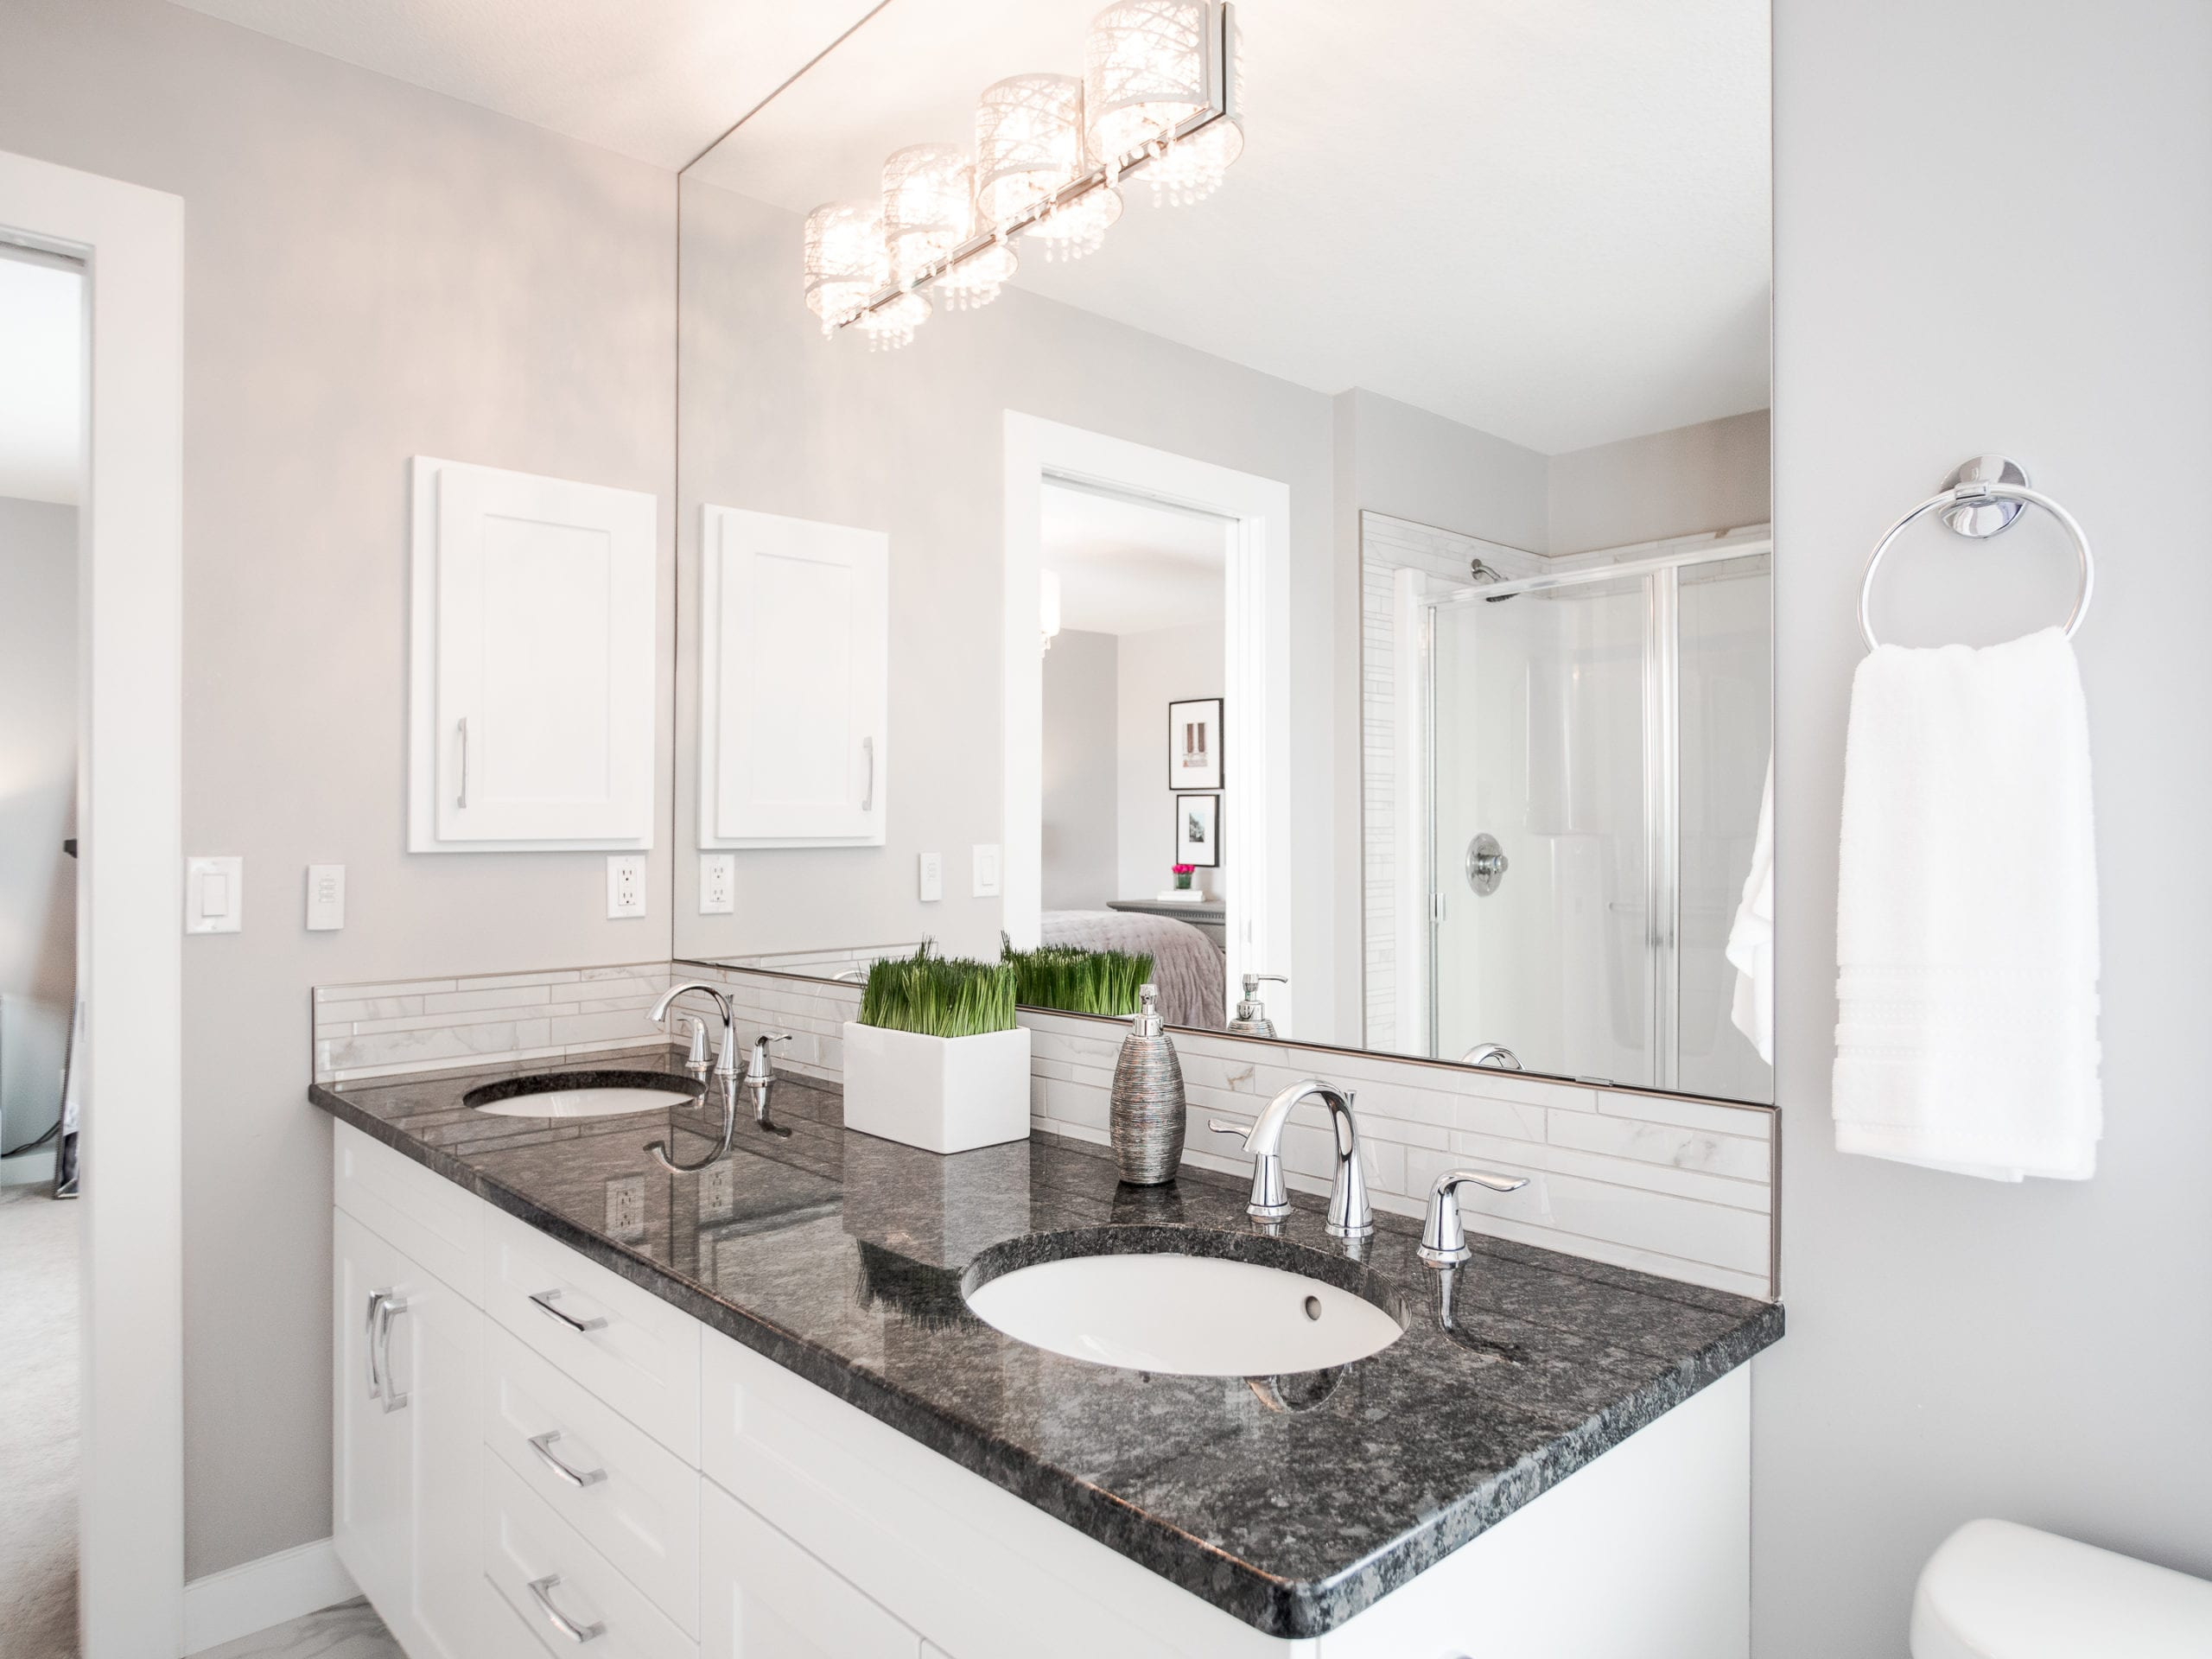 Hello Gorgeous - 1306 Kings Heights Way SE, Airdrie AB. - Tara Molina Real Estate (34 of 53)